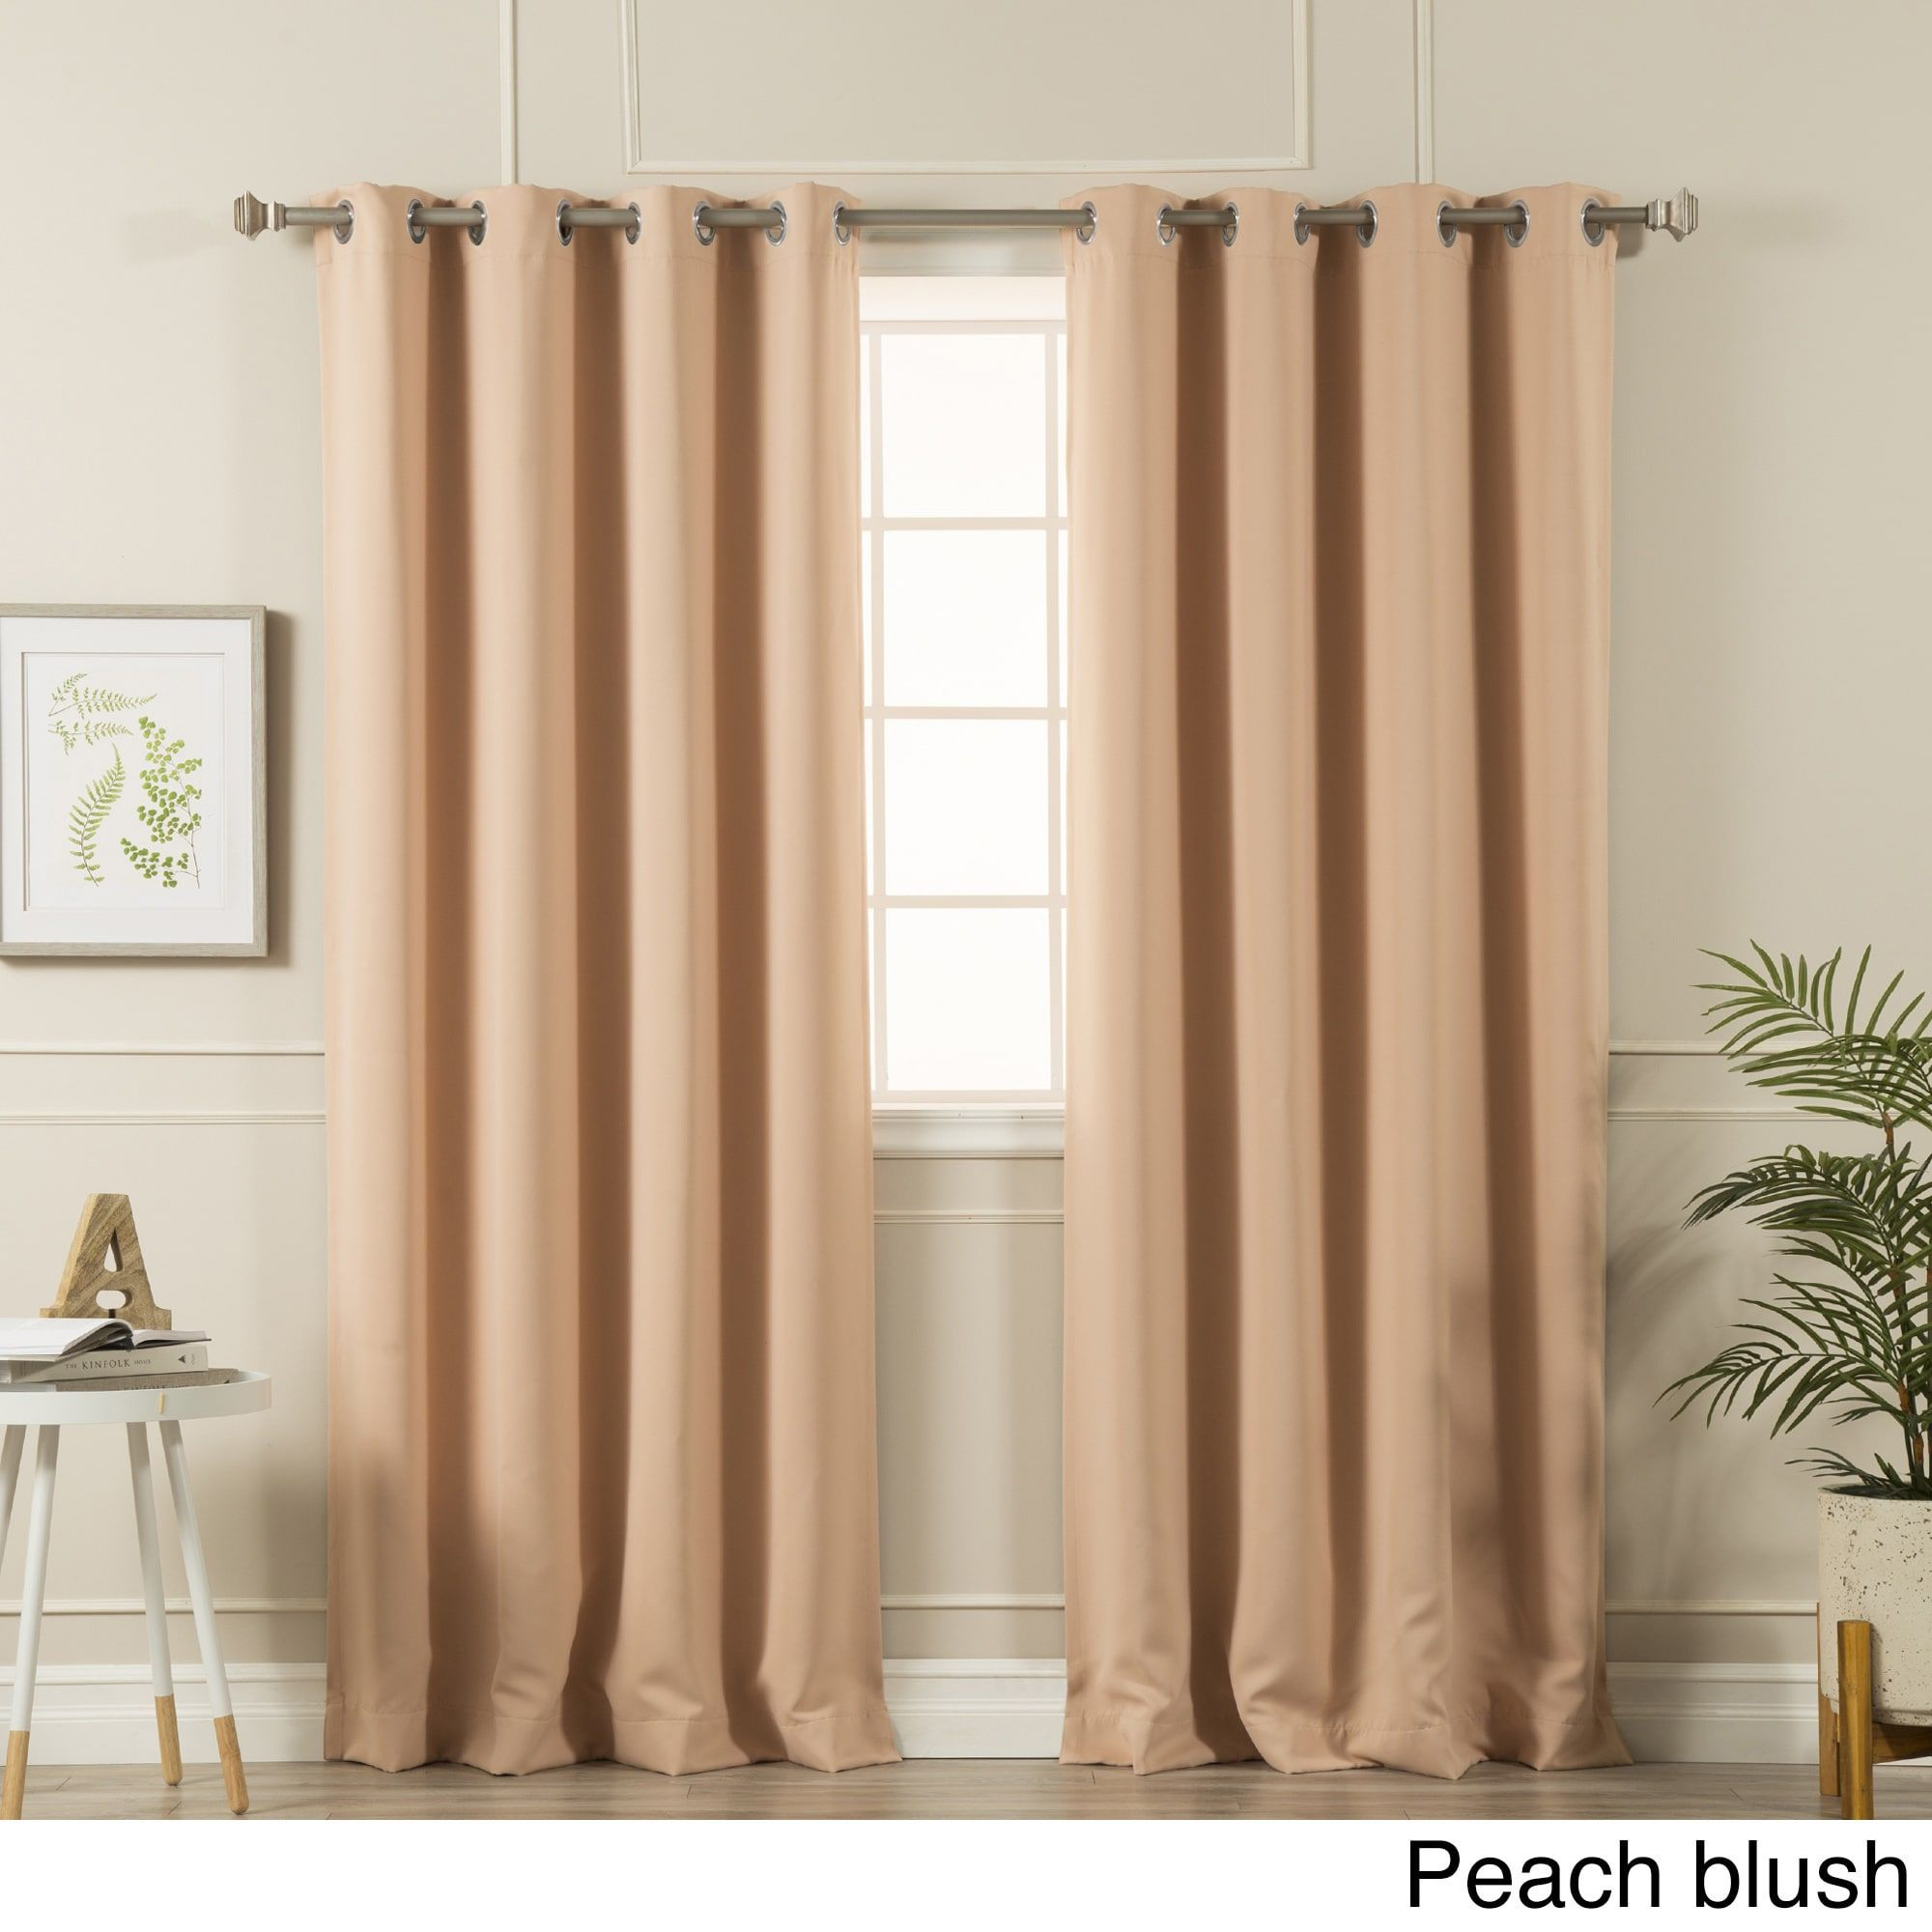 Aurora Home Silvertone Grommet Top Thermal Insulated Pertaining To Thermal Insulated Blackout Curtain Panel Pairs (View 15 of 30)